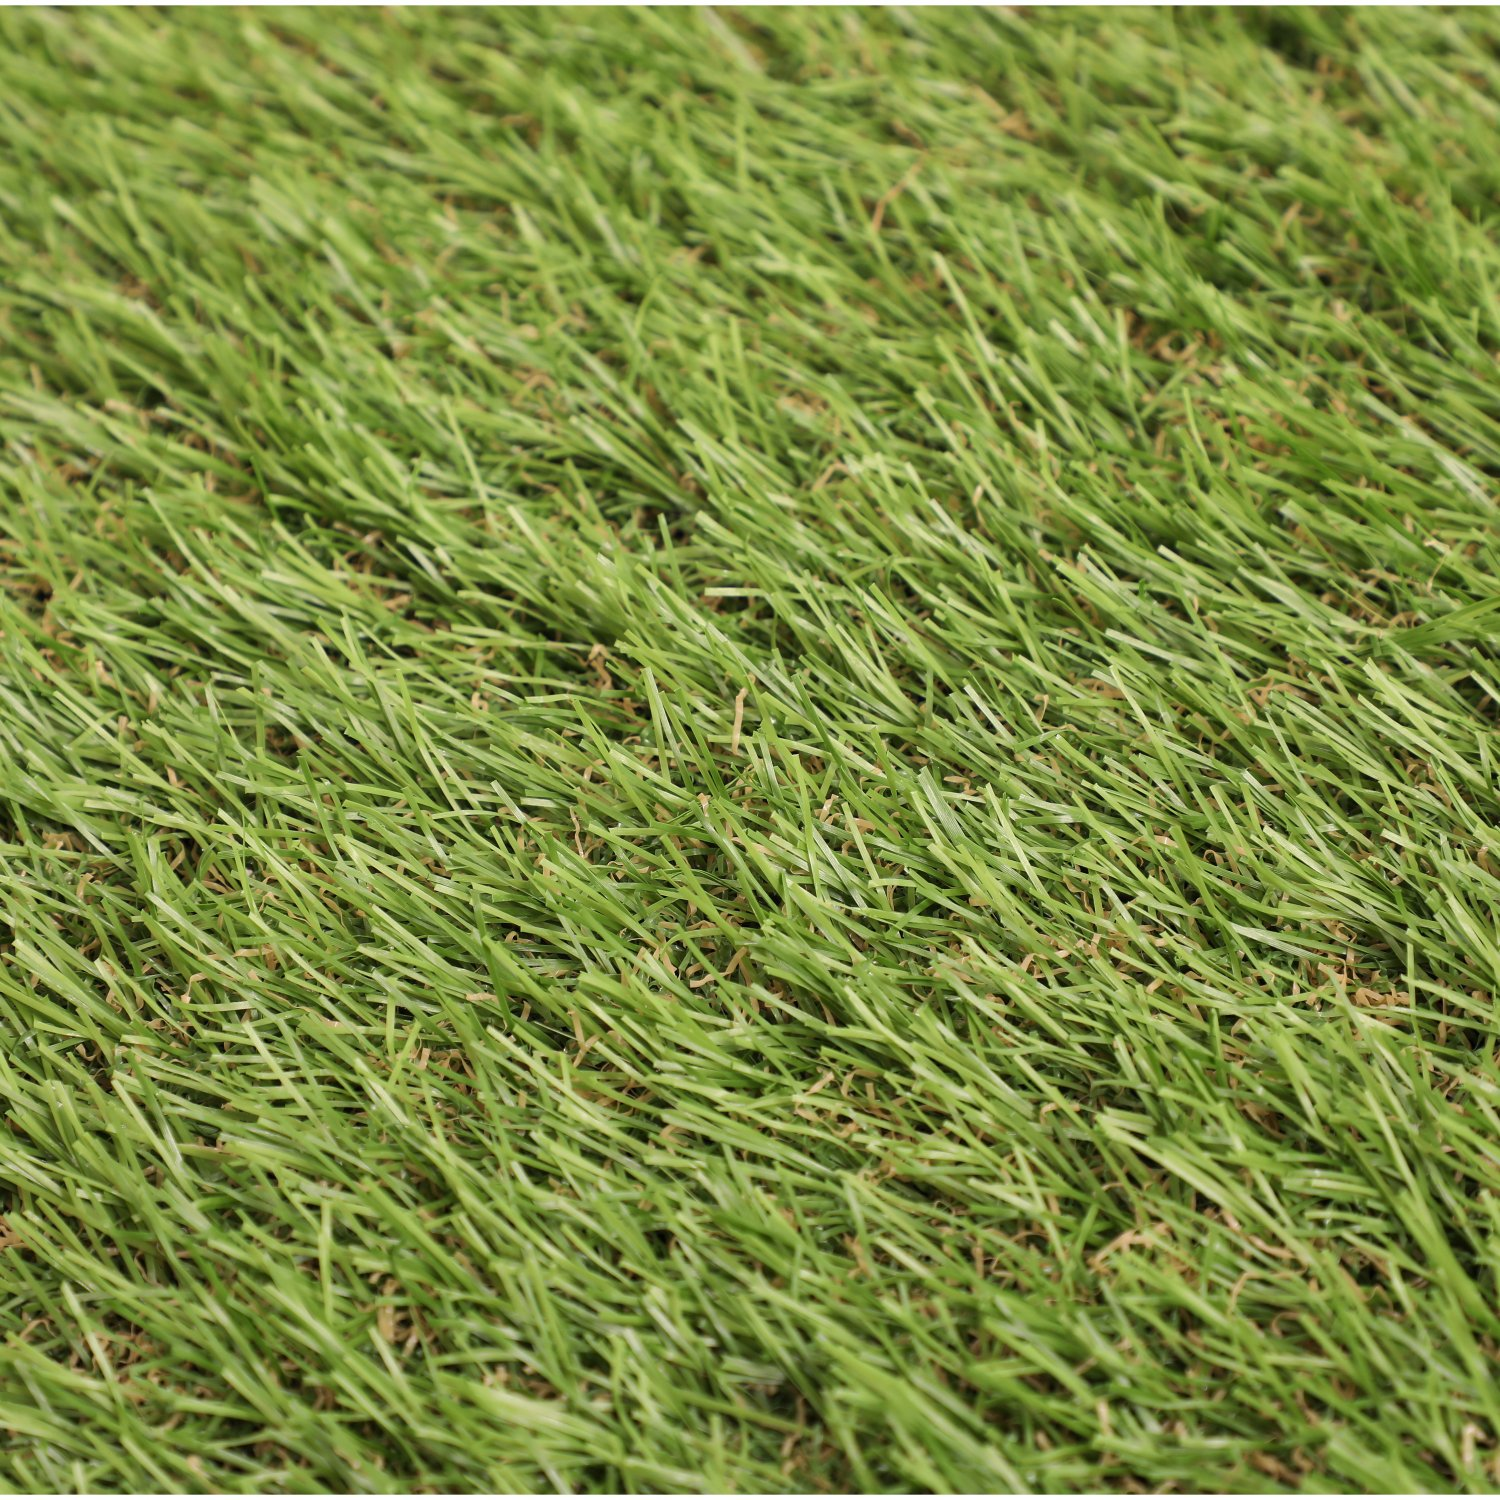 30mm Artificial Grass Mat 6ft x 3ft Greengrocers Fake Turf Lawn